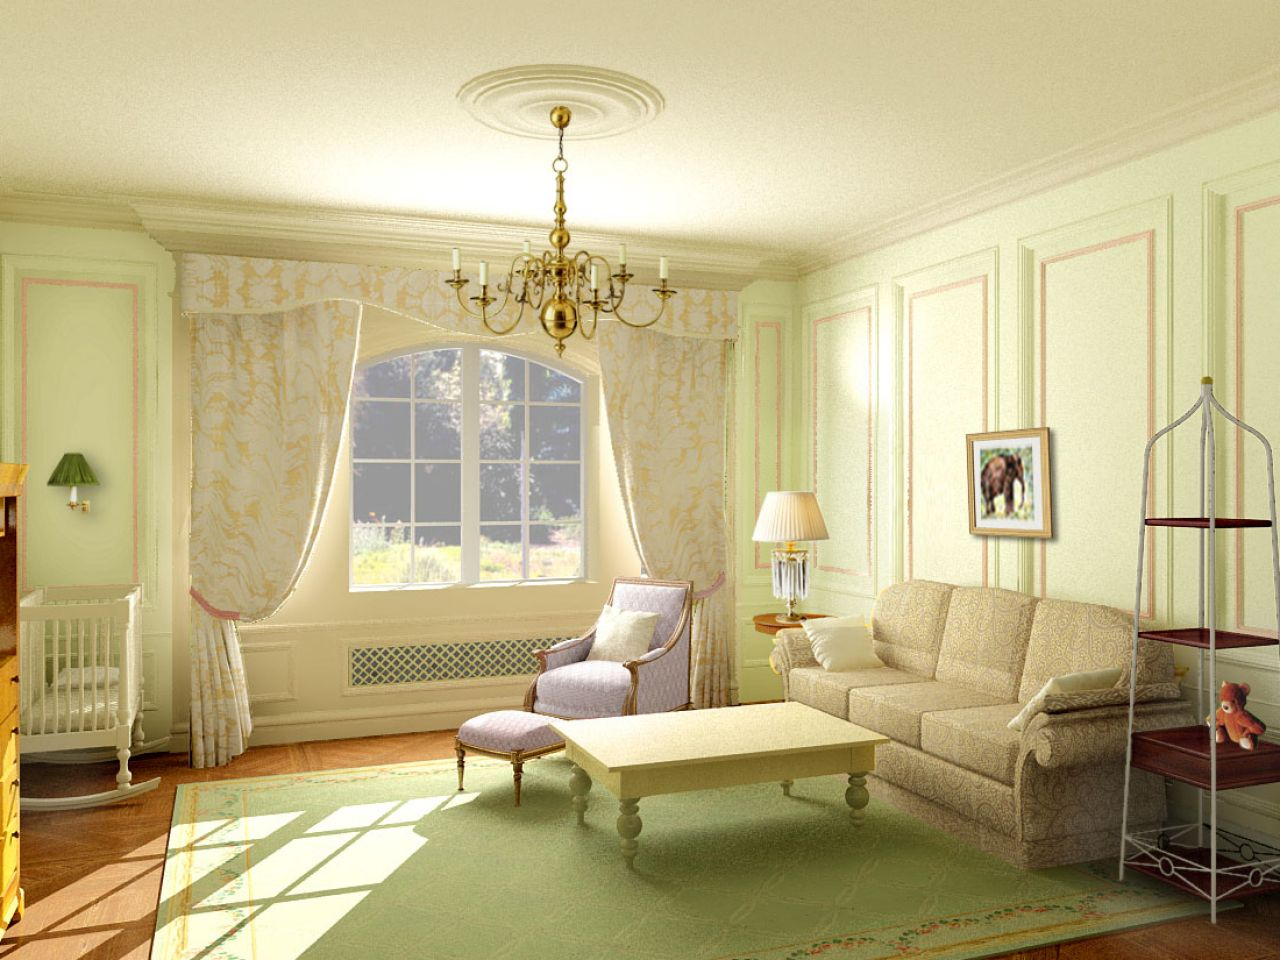 Beuatuful LowCountry Living Room Design (Image 2 of 8)